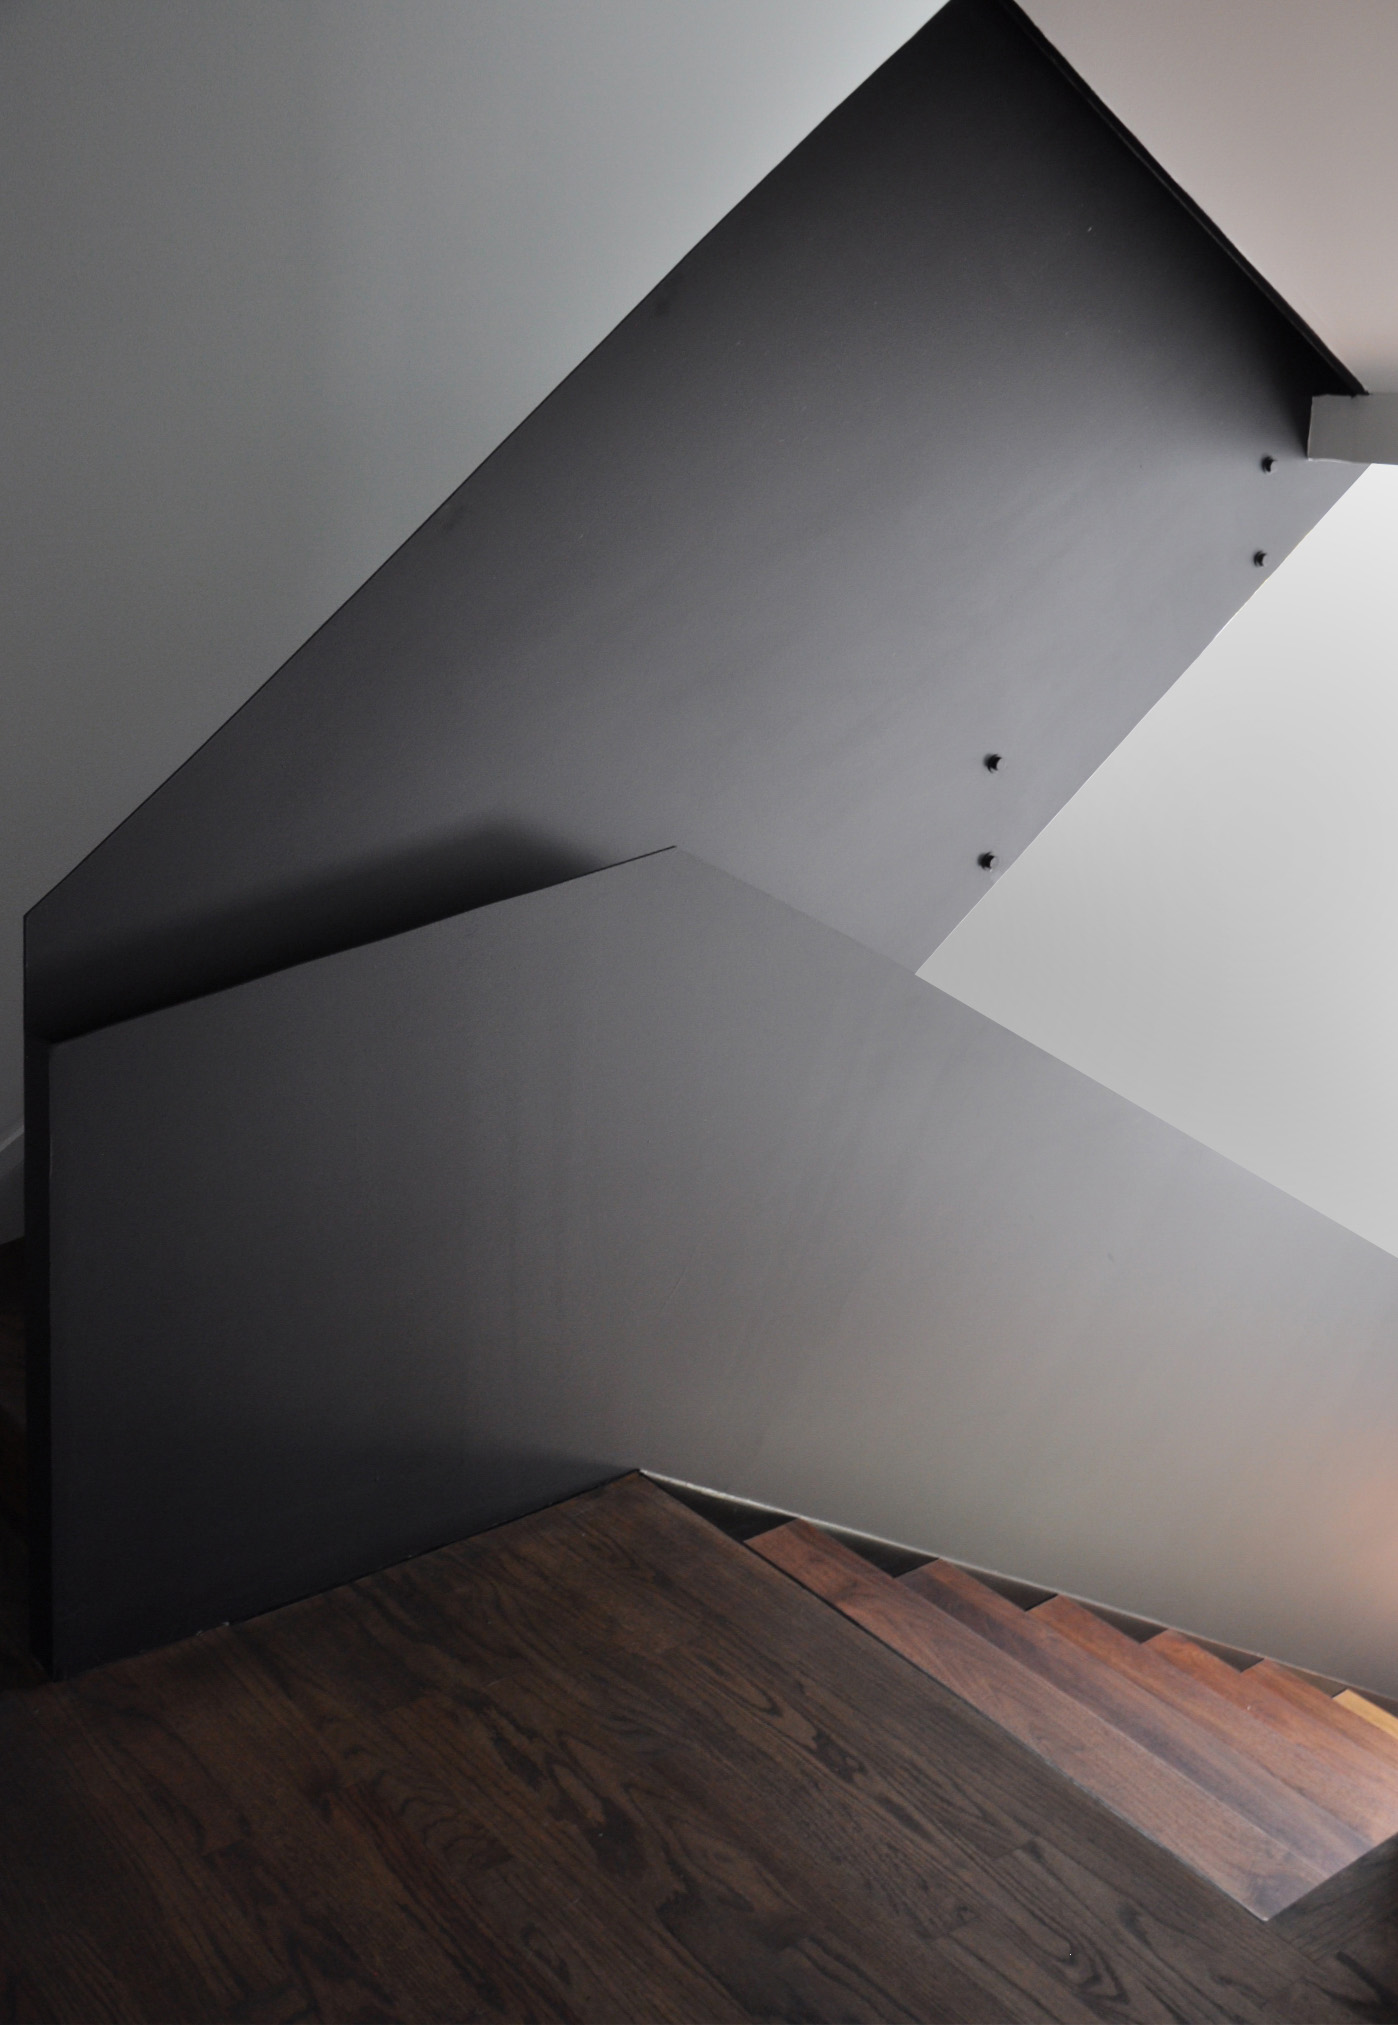 Walnut flooring and stair treads complement the powder-coated steel railing